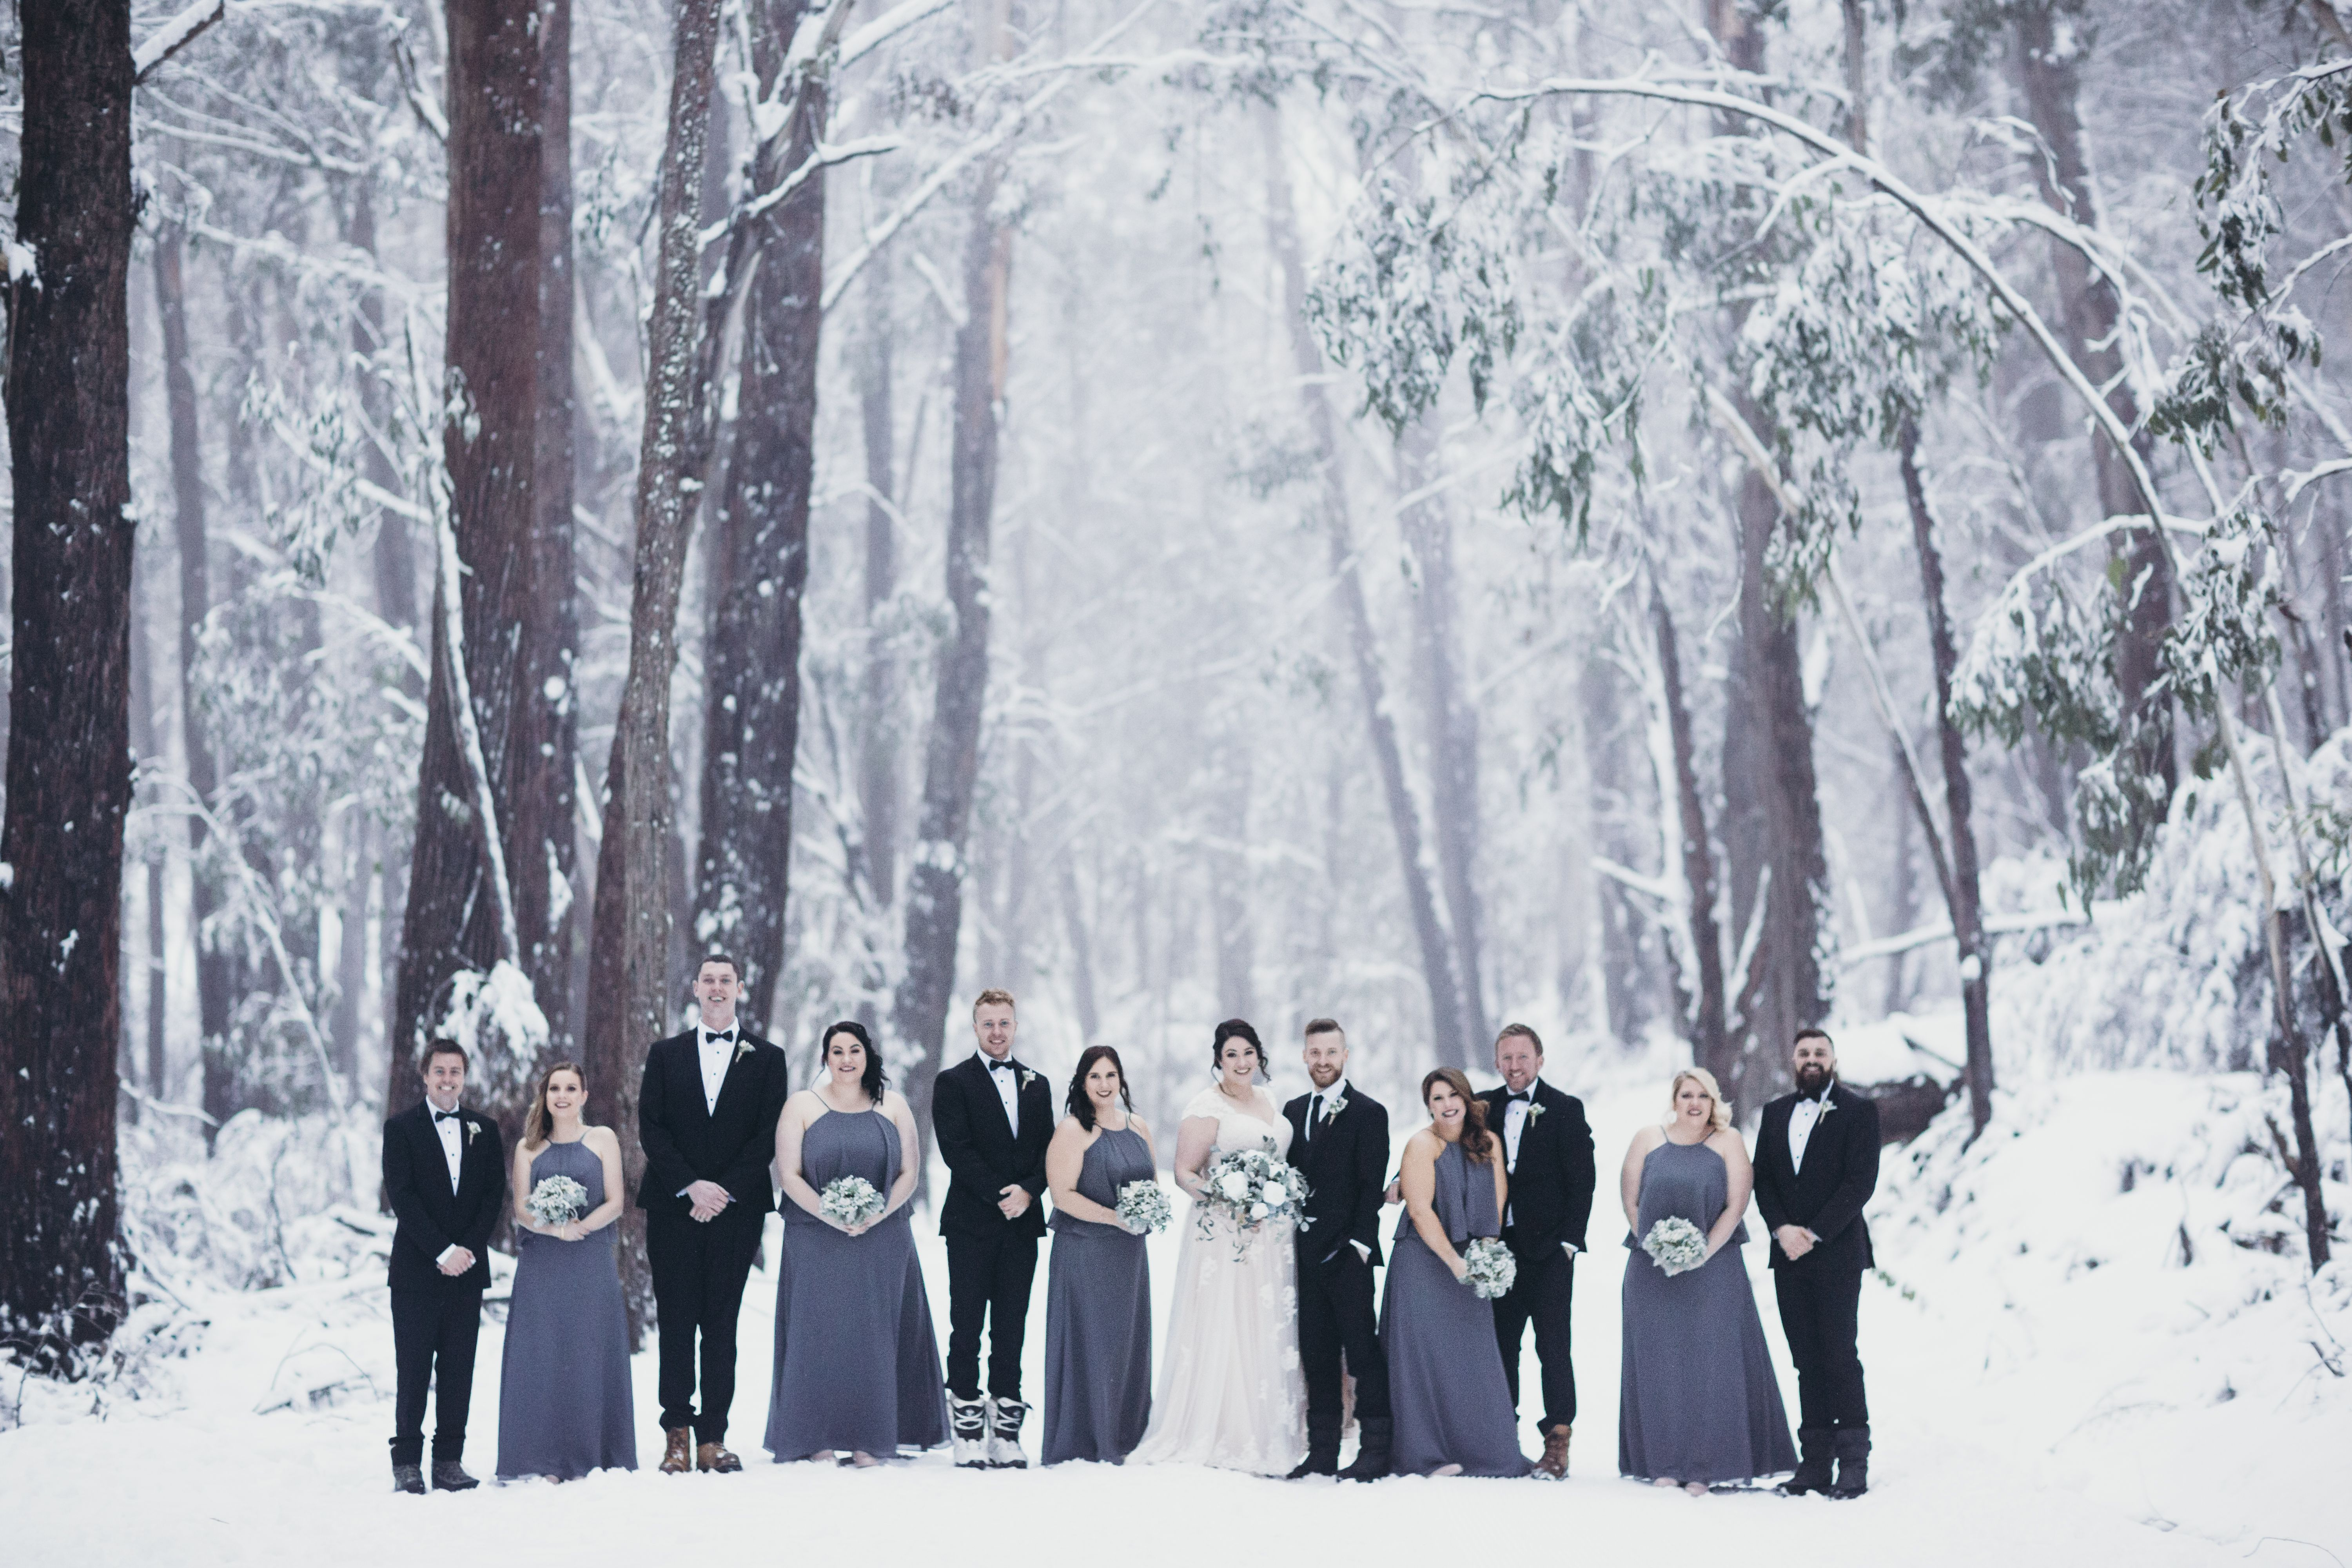 We Love A Snow Wedding 3 Bridesmaids Wearing Our Sorella Vita 8736 3 Debutante Gowns Snow Wedding Bridal